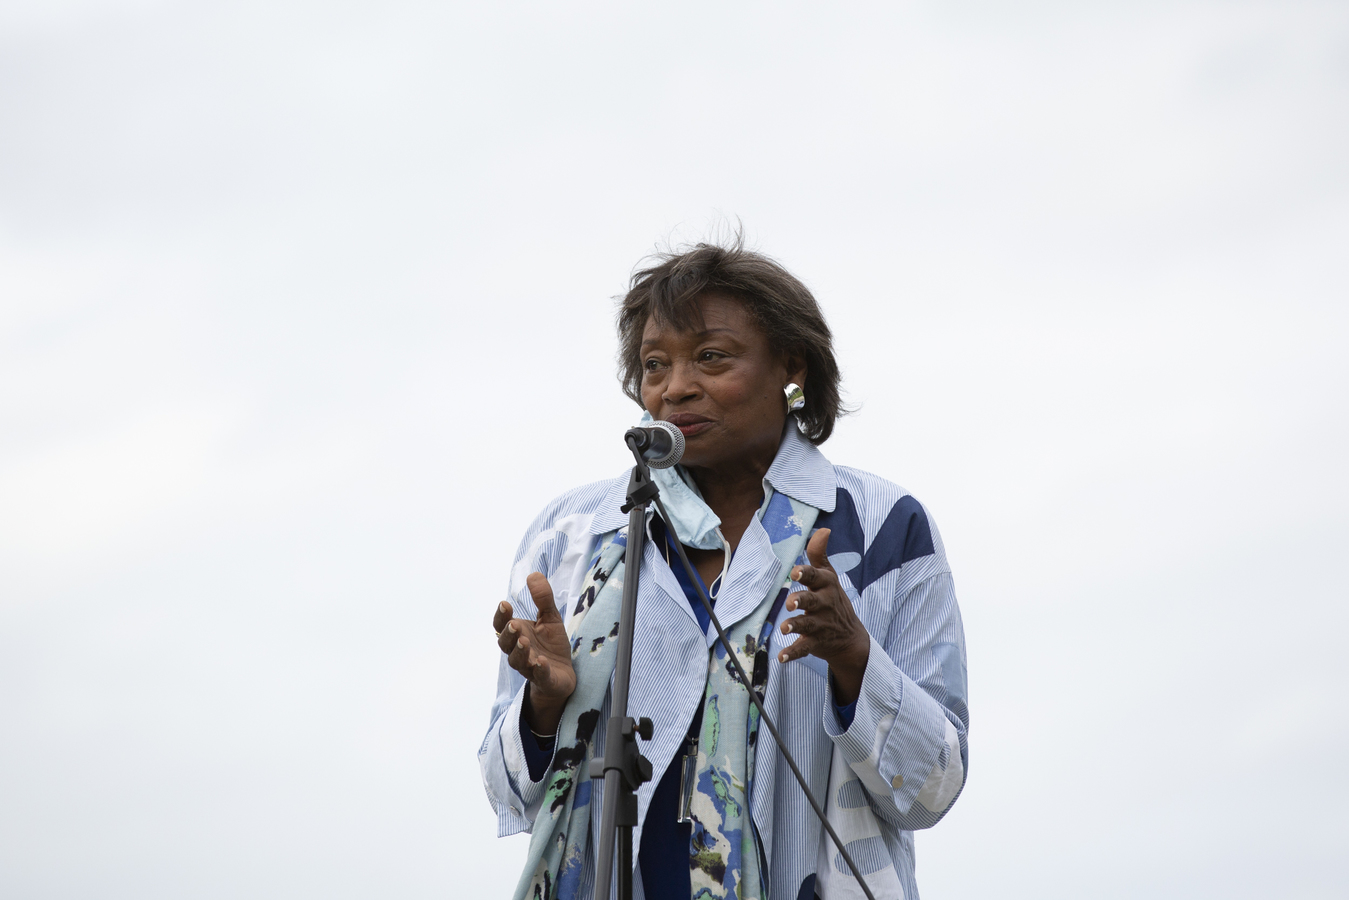 Black Lives Matter Rally Dobbs Ferry, NY 9/13/20 NYS Senator and Majority Leader Andrea Stewart-Cousins